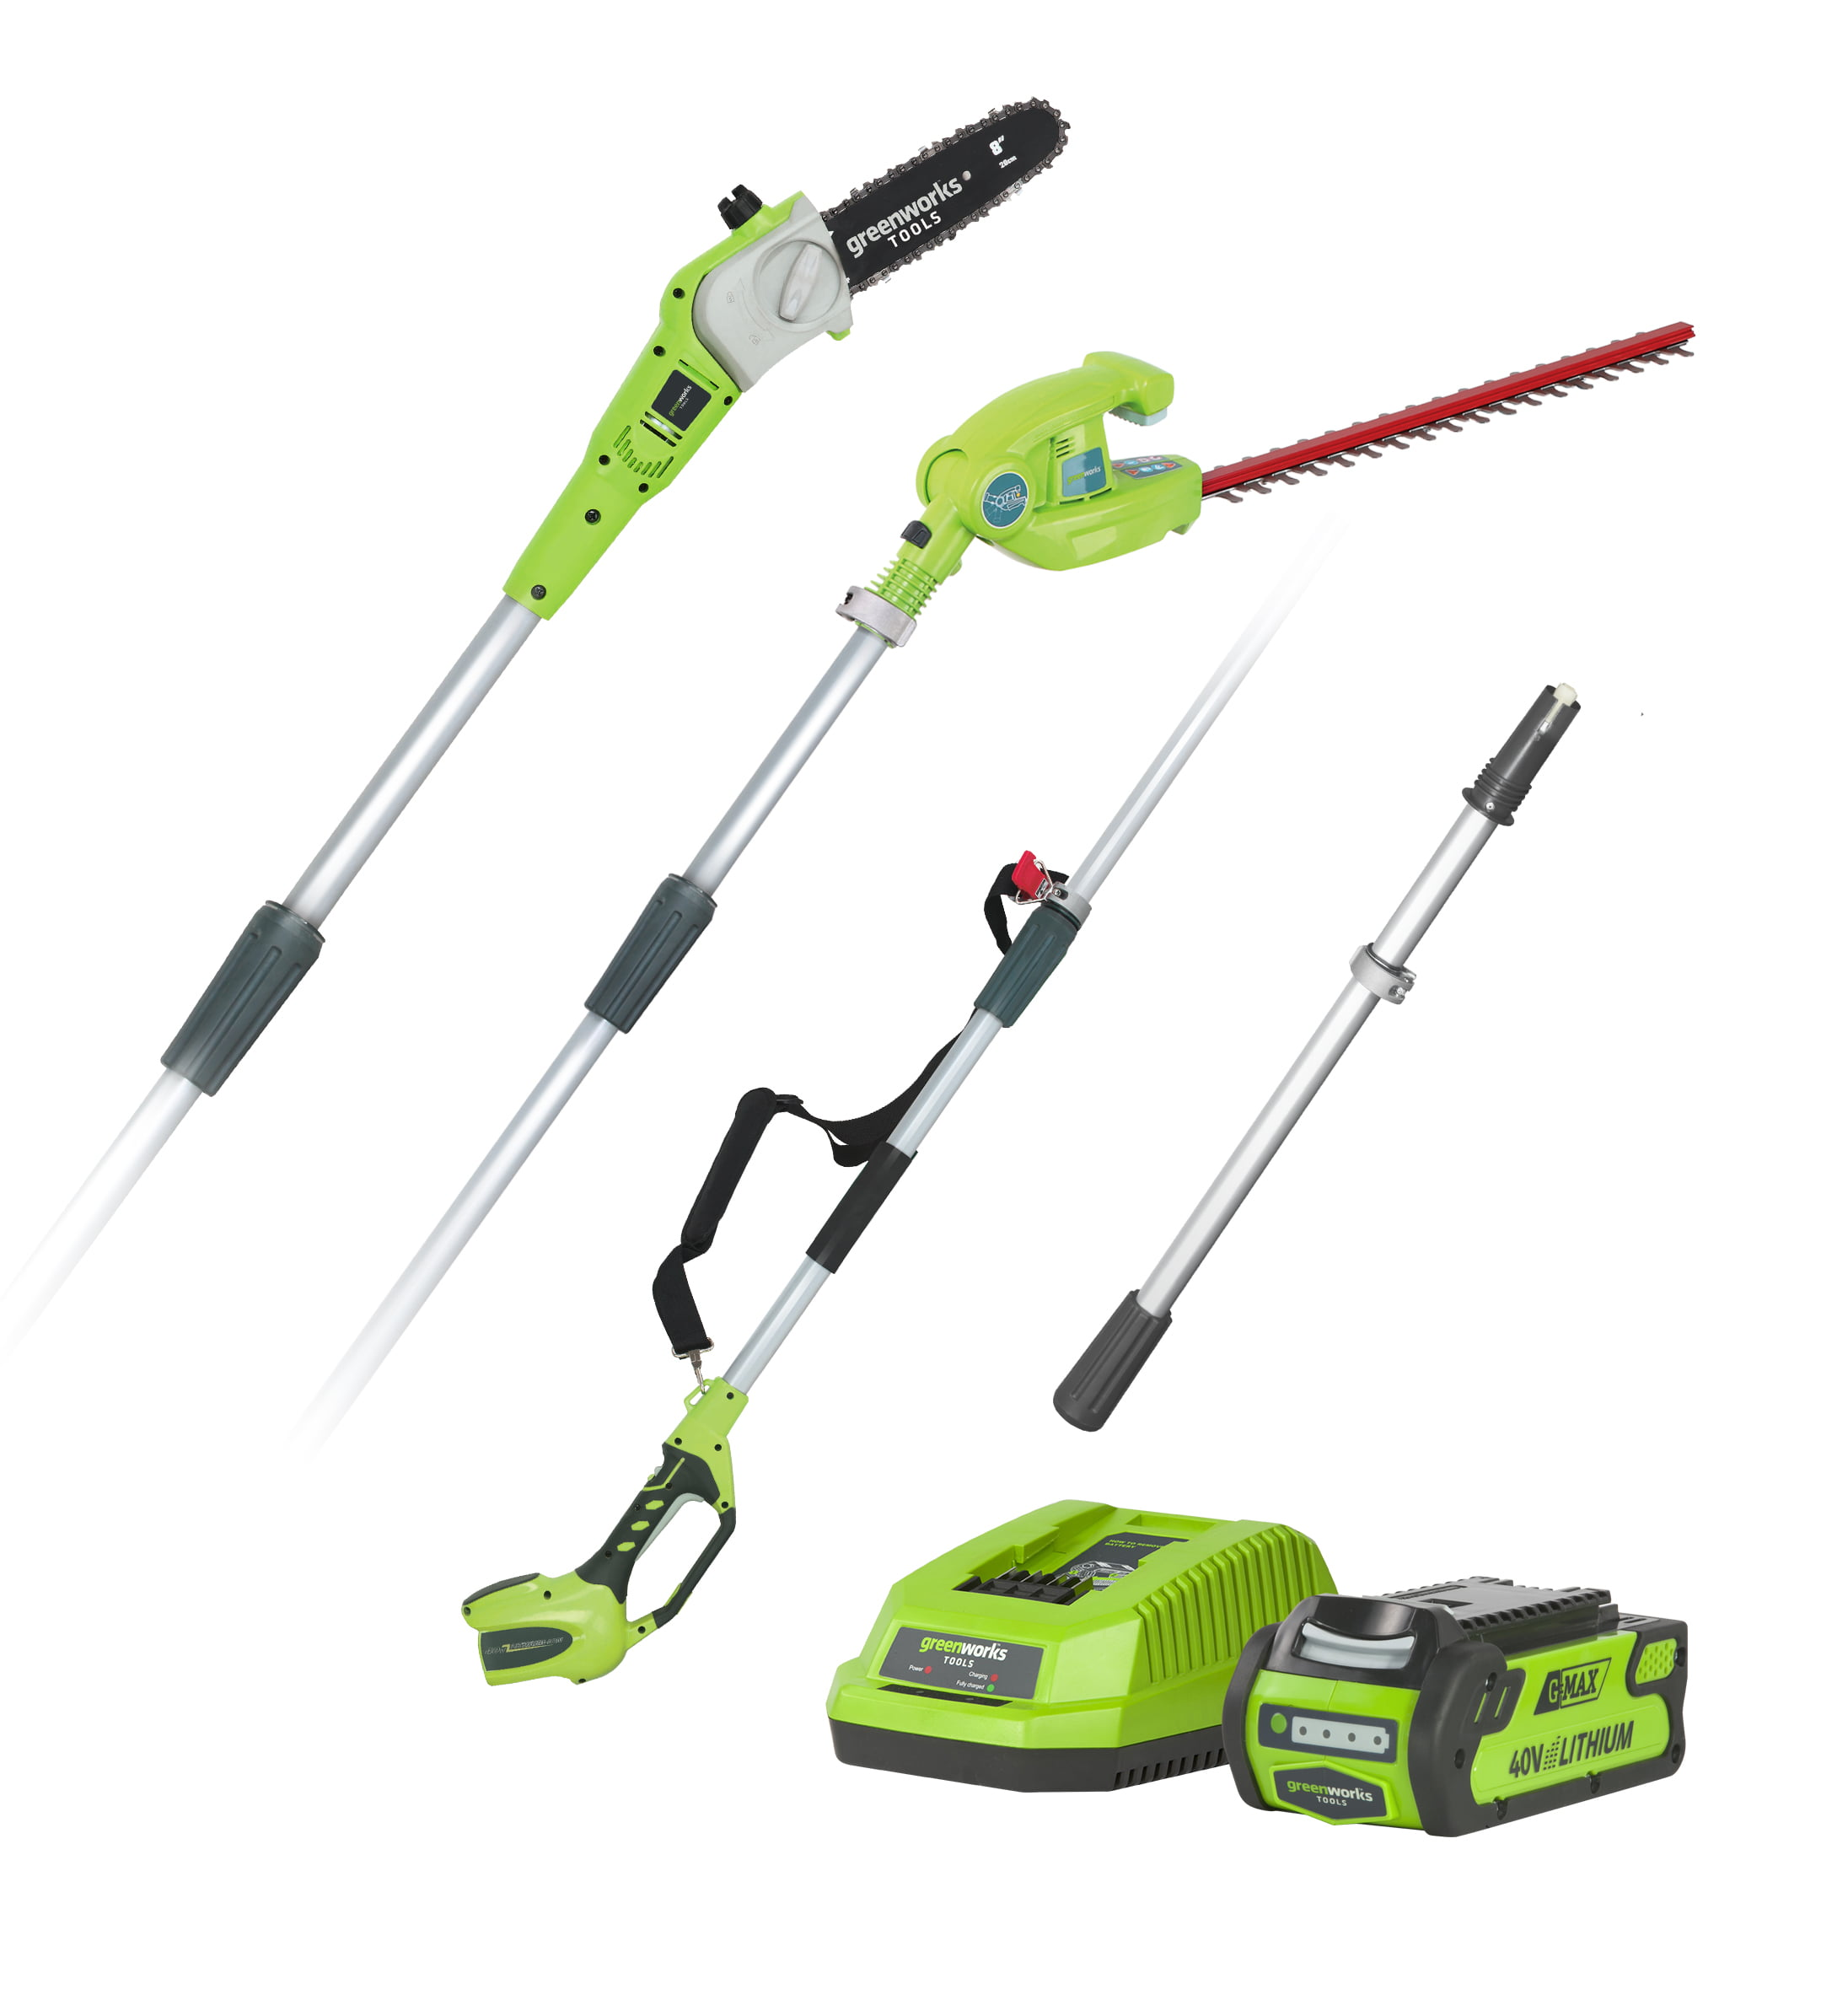 Greenworks G40PSHK2 40v Long Reach Hedge Trimmer & Pruner Combo with 2Ah battery and charger